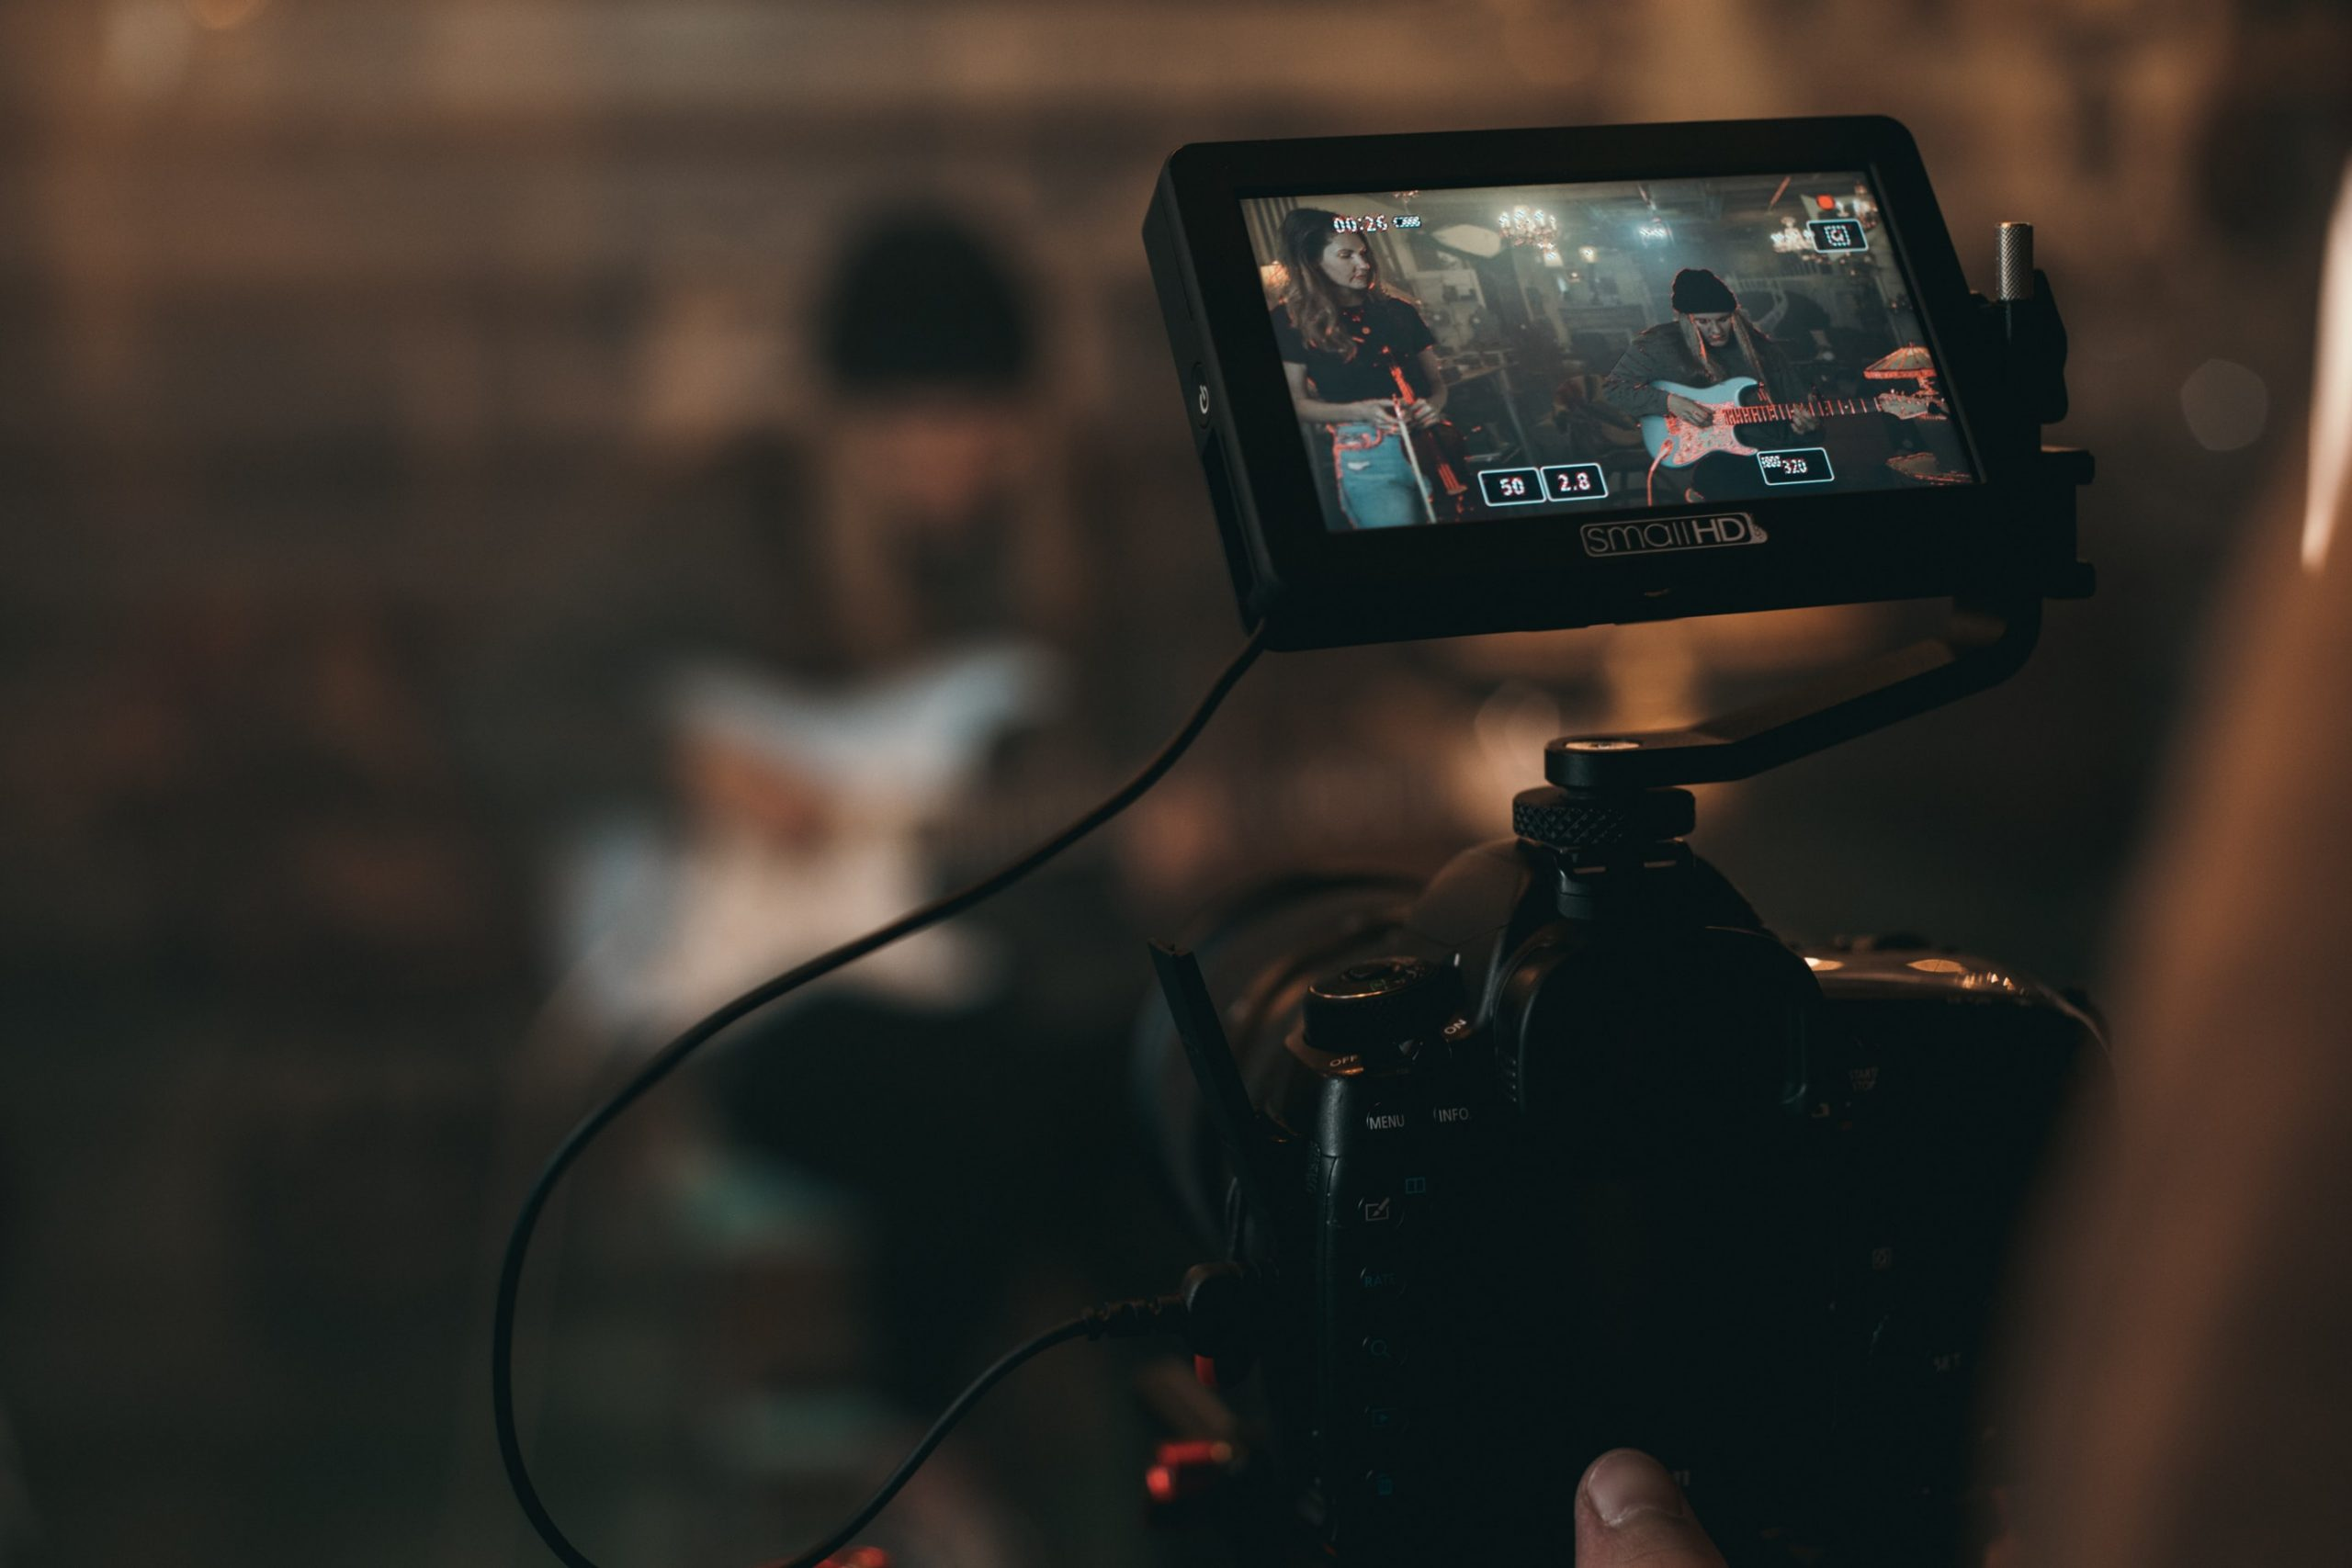 Film your performance for Instagram: How to video yourself and post for feeds, stories, and IGTV